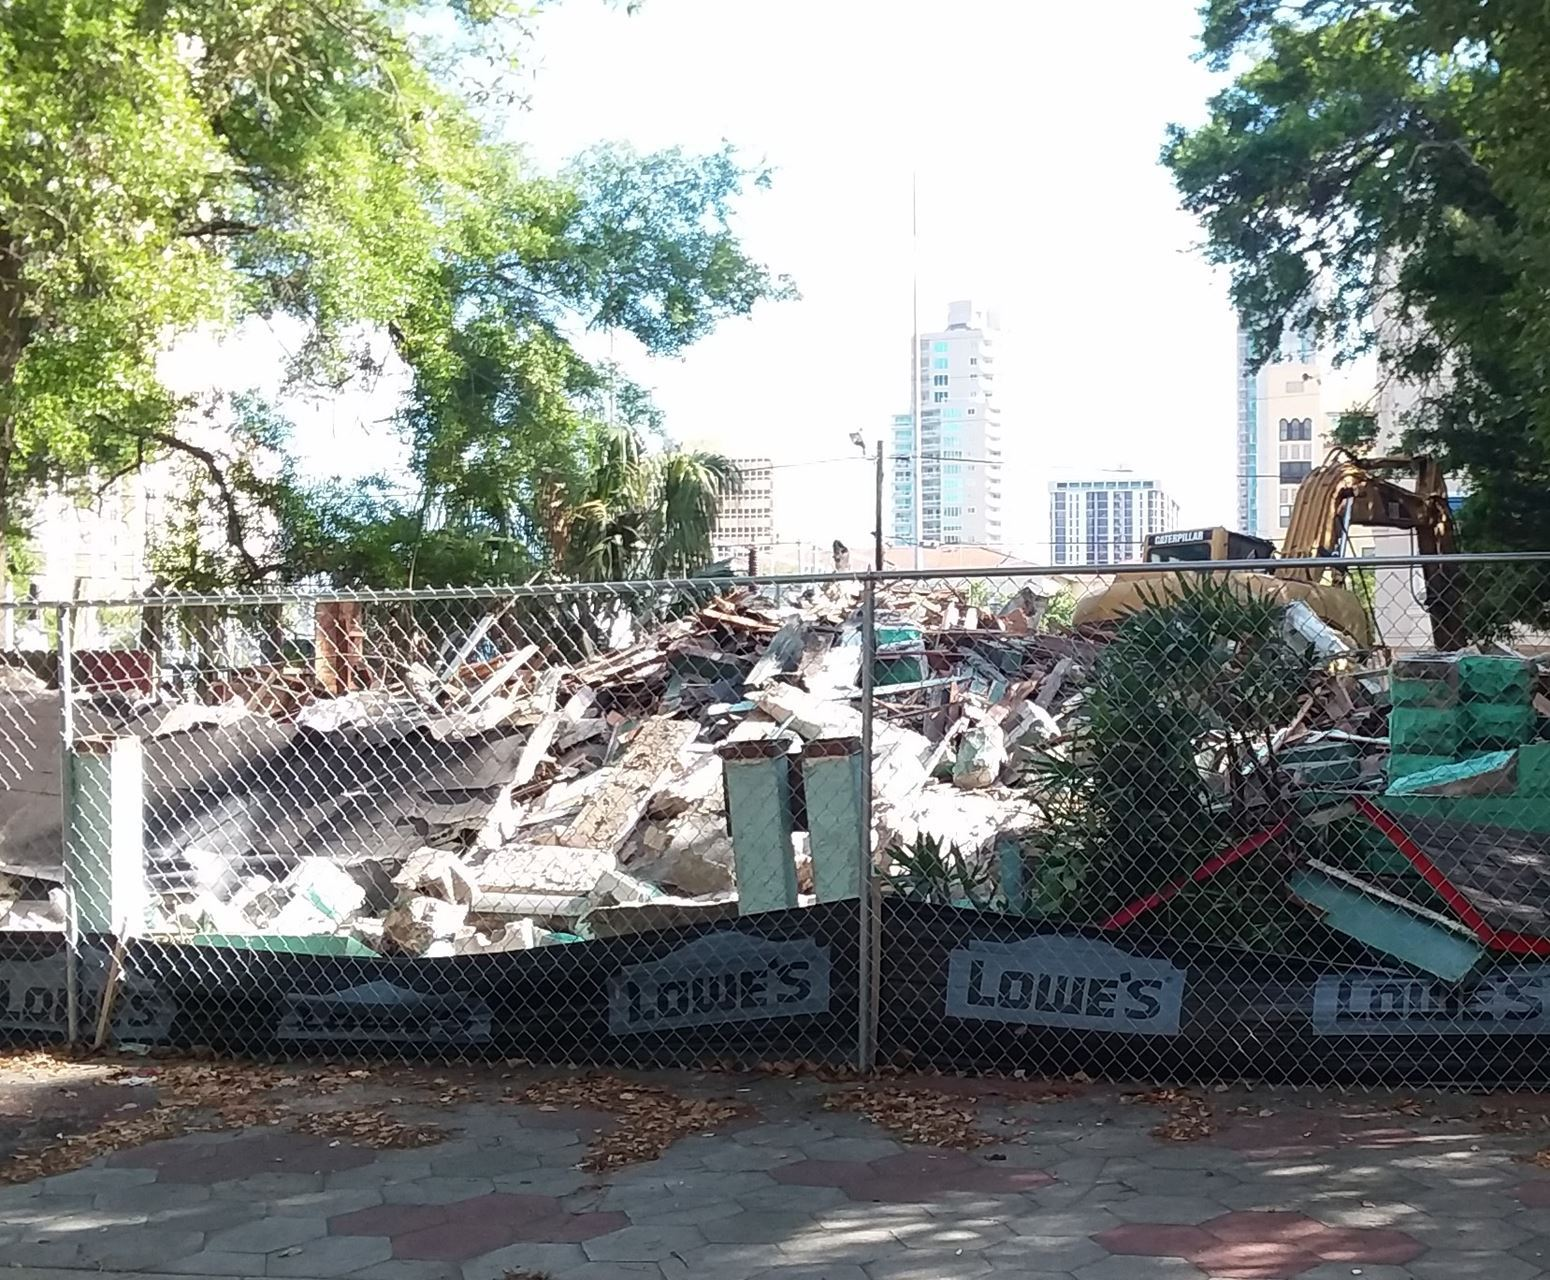 The rubble of a demolition